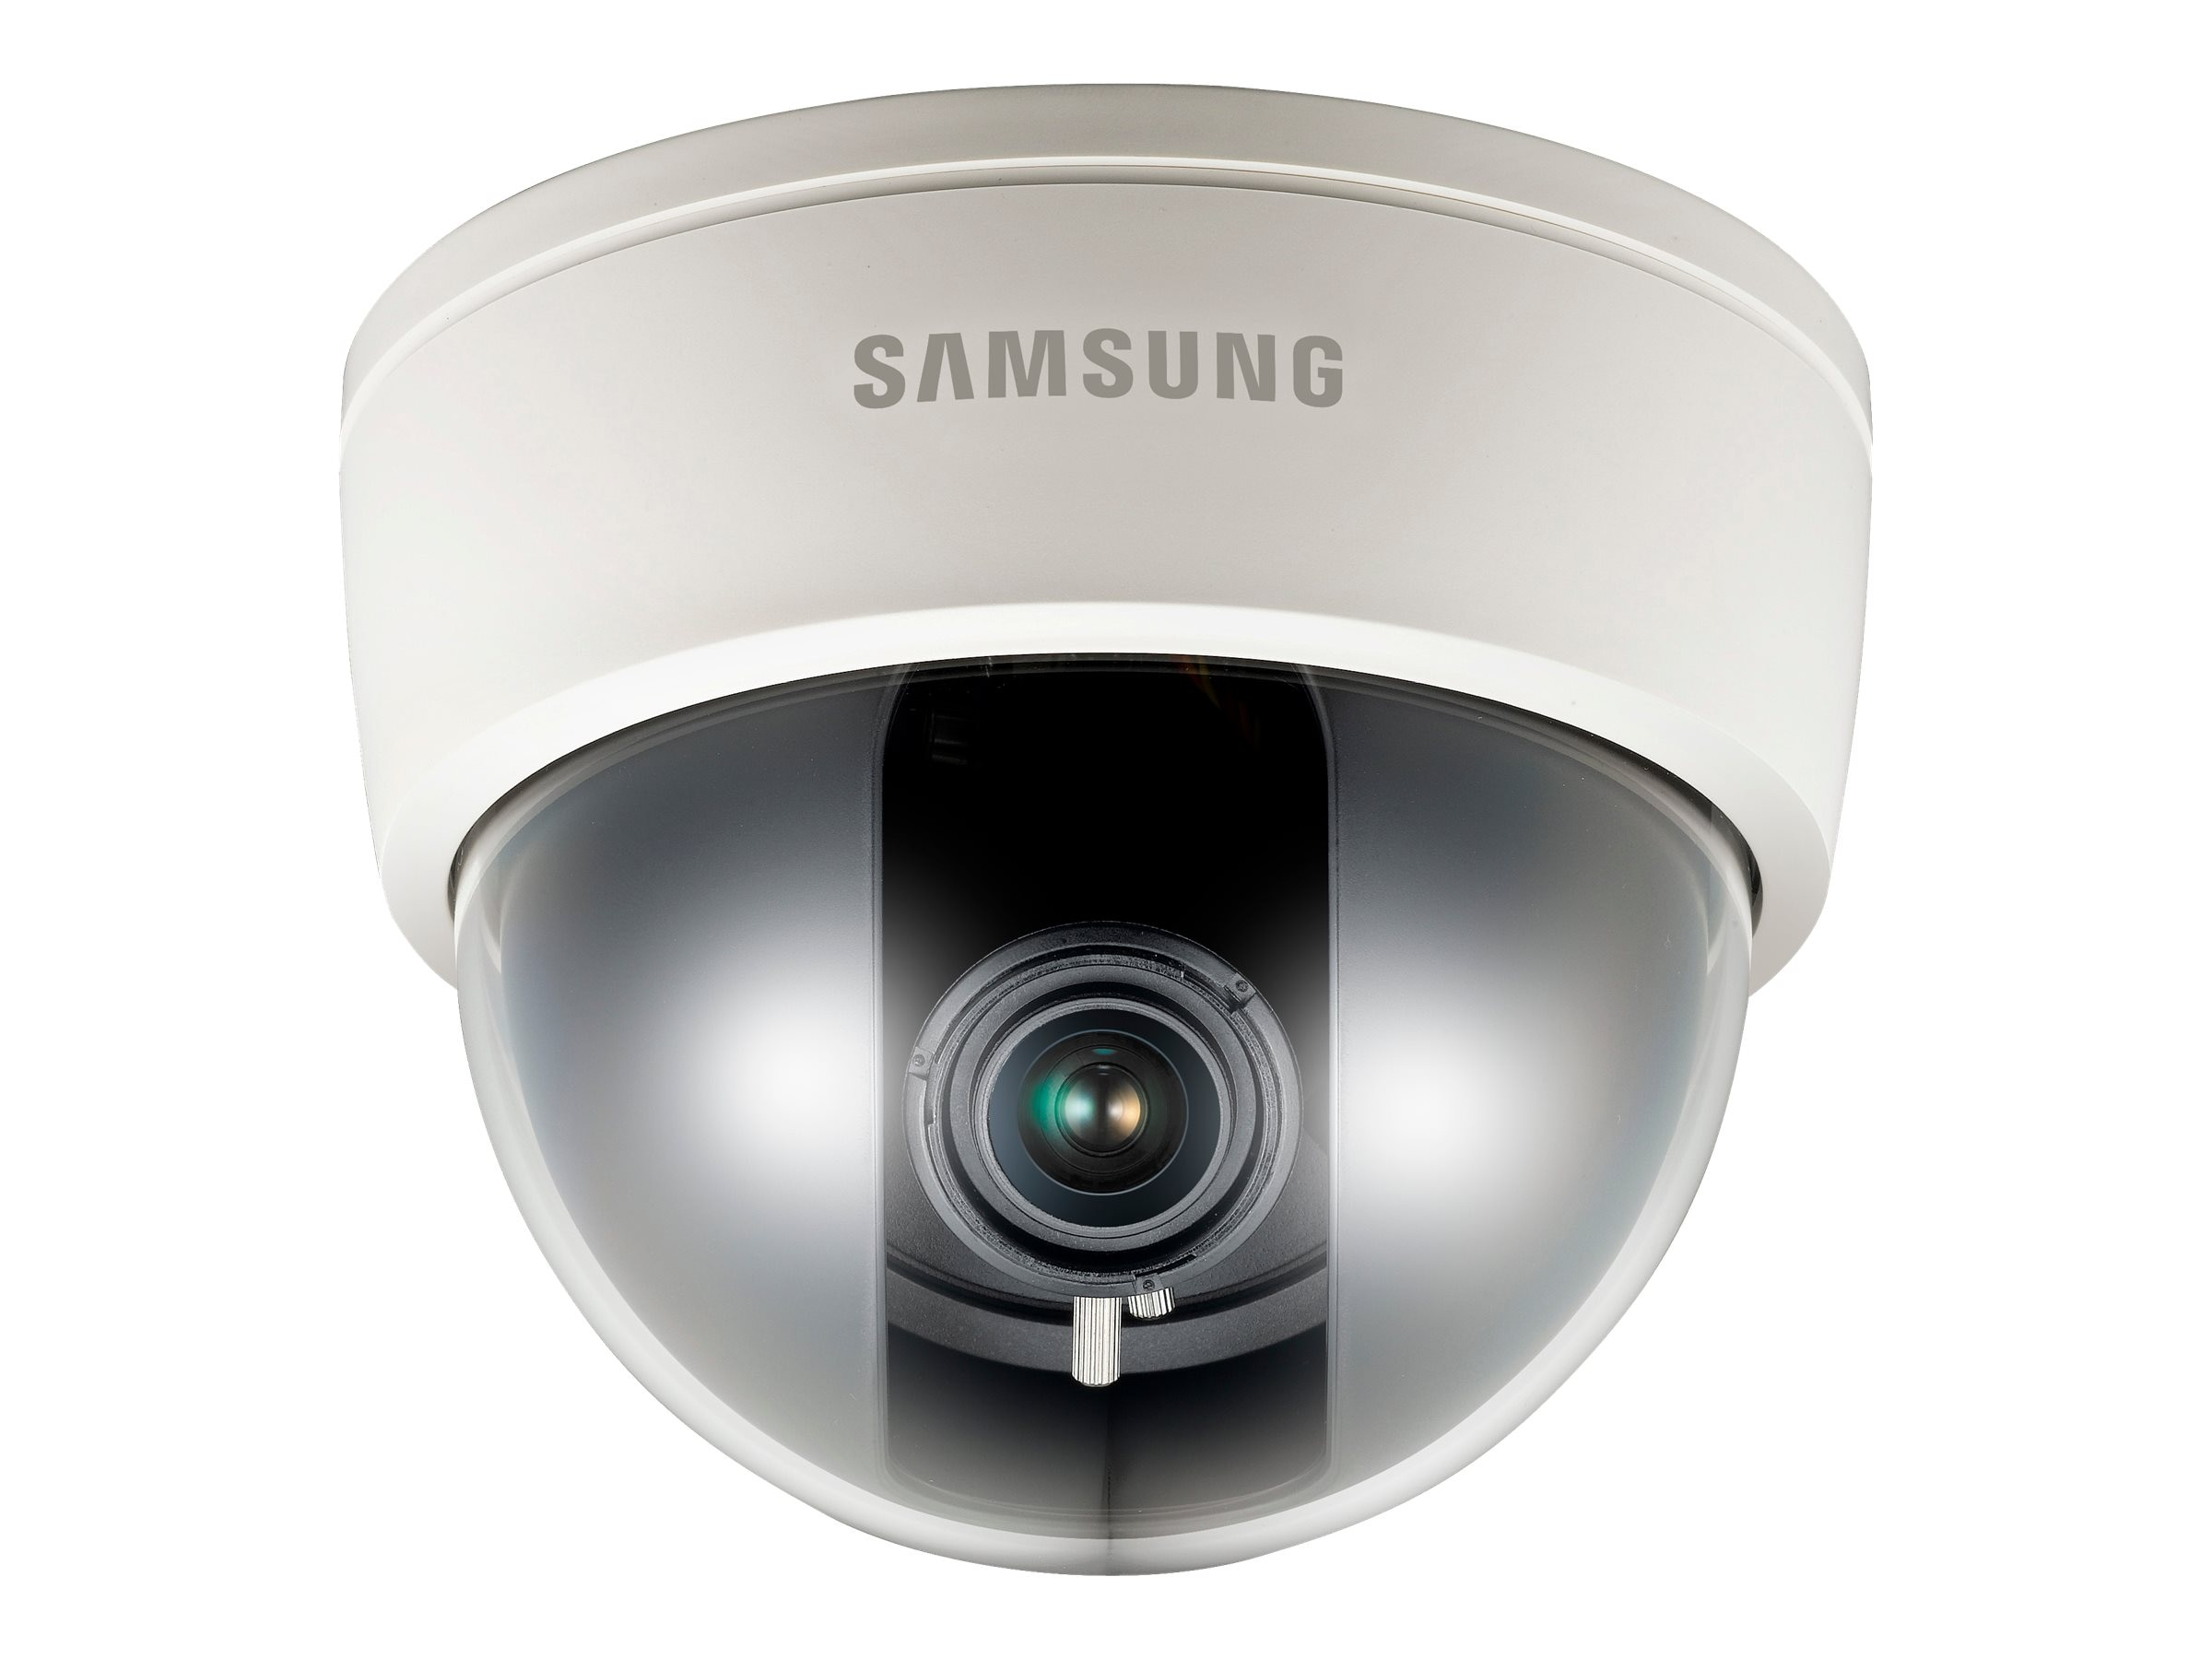 Samsung High Resolution Day & Night Varifocal Dome Camera, SCD-2080